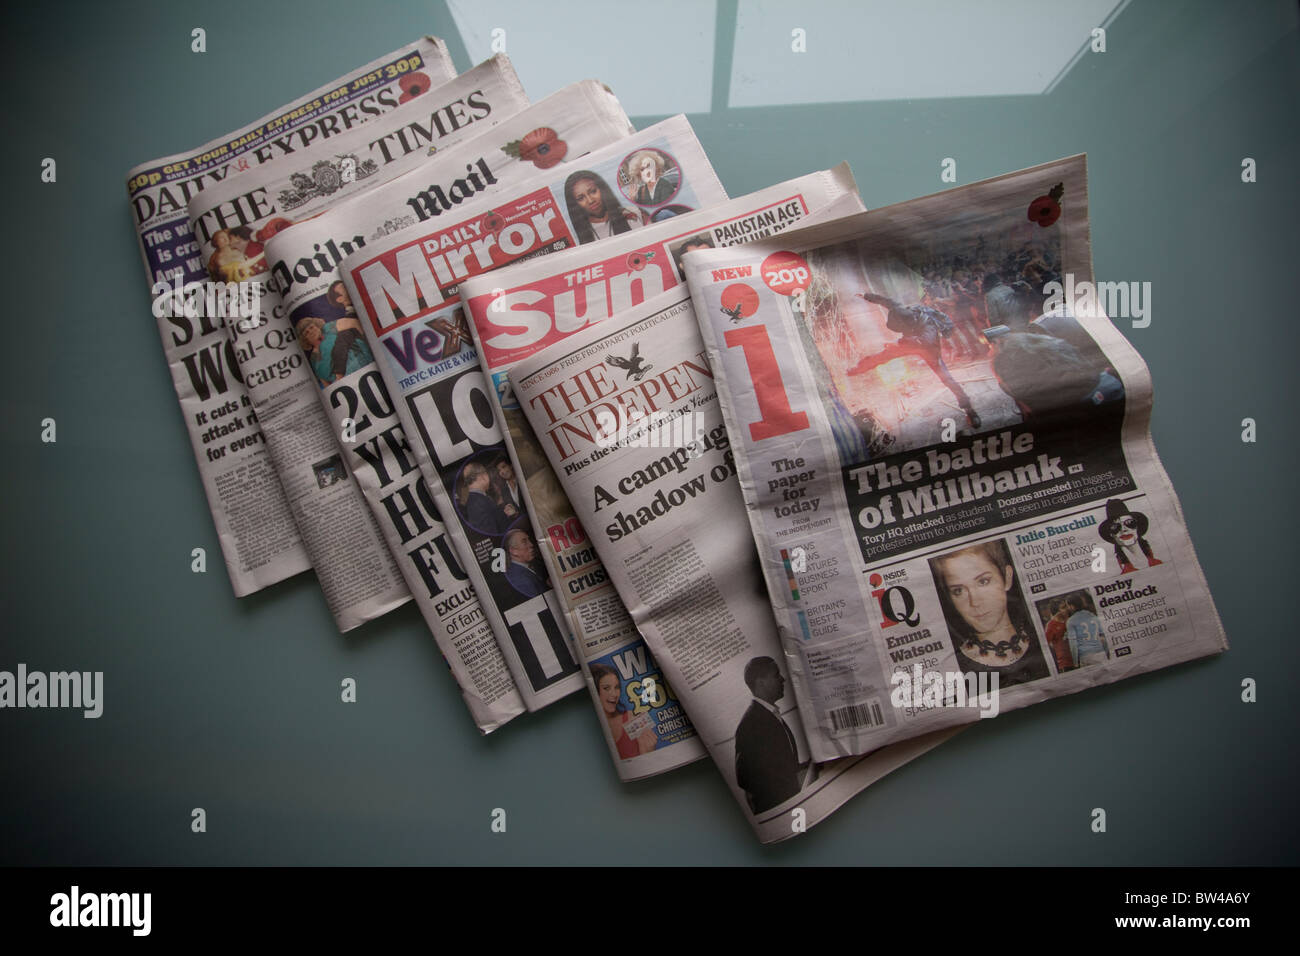 Daily UK tabloid newspapers, daily express, the times, Daily mail, daily mirror, the sun, the independent, i independent, Stock Photo